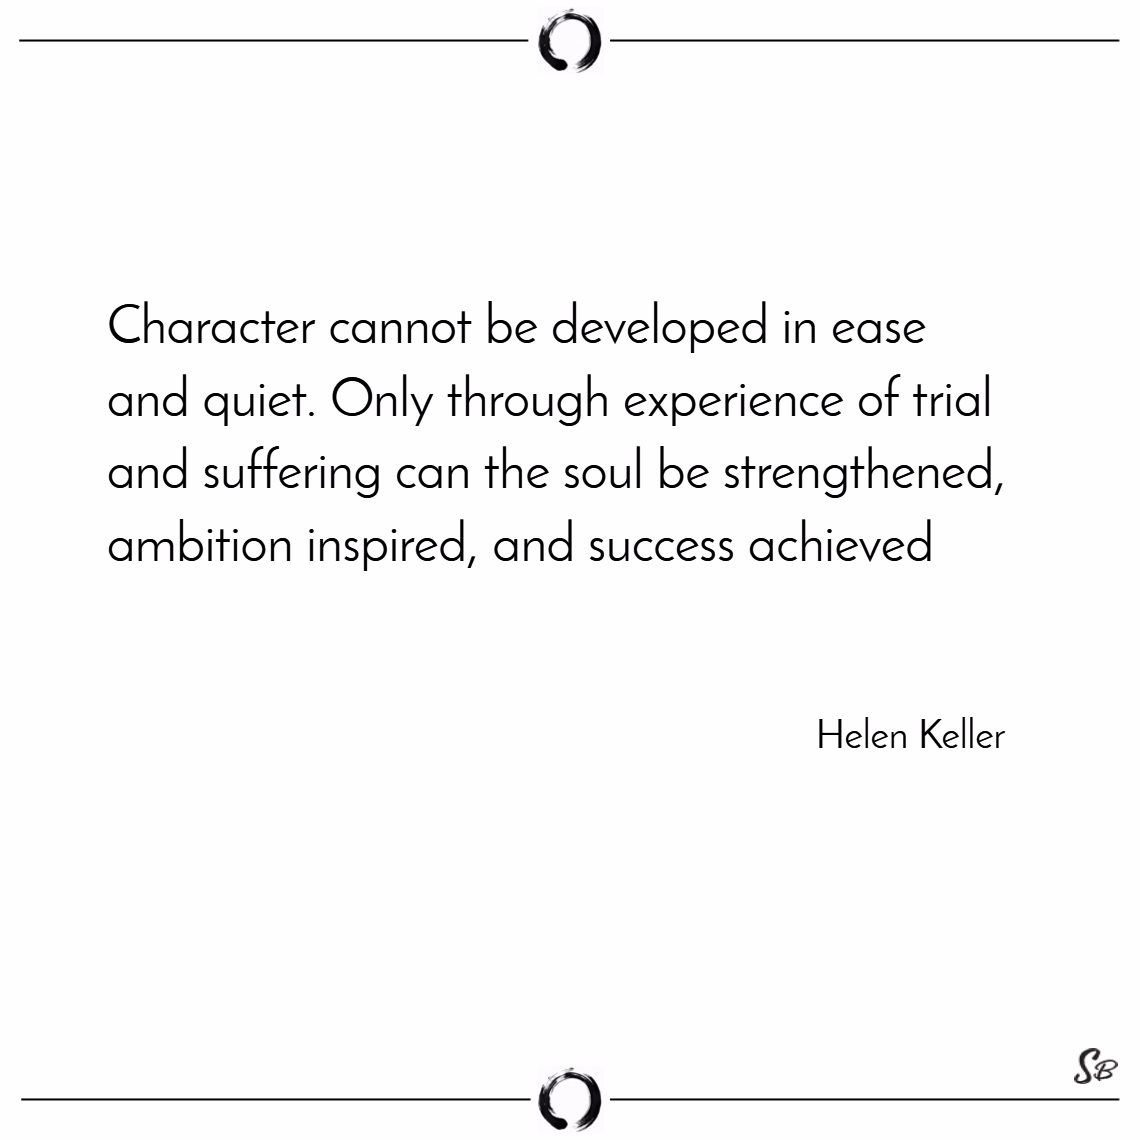 Character cannot be developed in ease and quiet. only through experience of trial and suffering can the soul be strengthened, ambition inspired, and success achieved. – helen keller words of encouragement